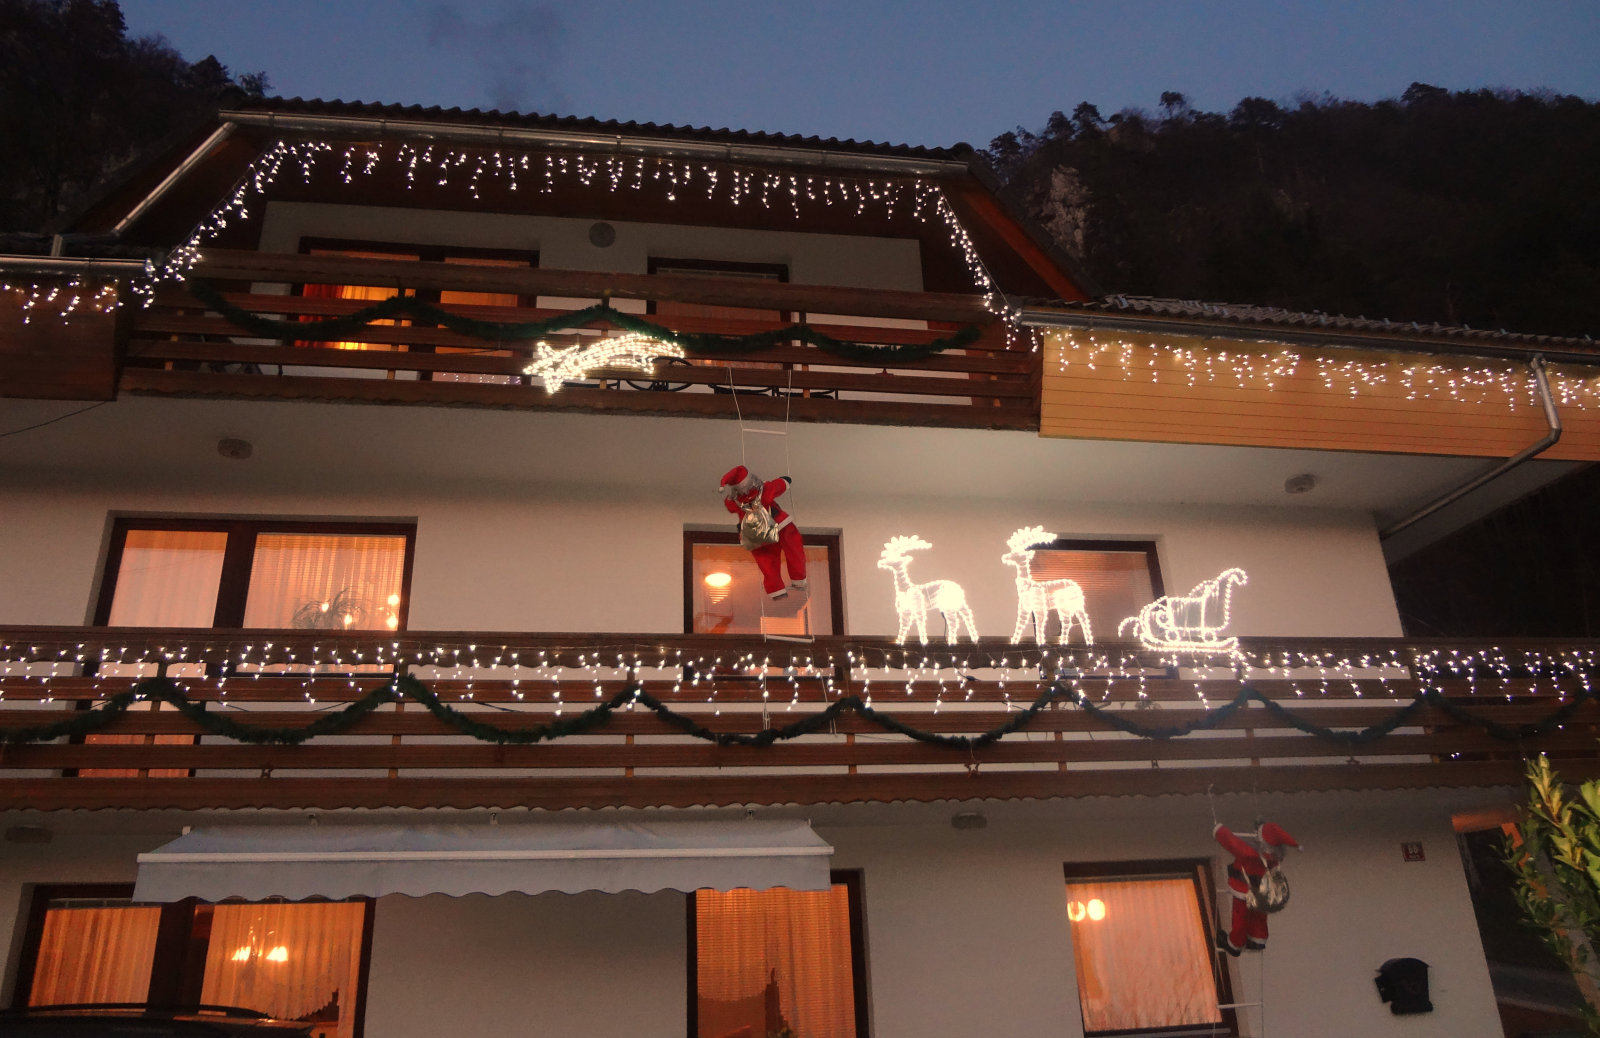 Exterior of the Fine Stay Apartment during the festive season decorated with Christmas lights